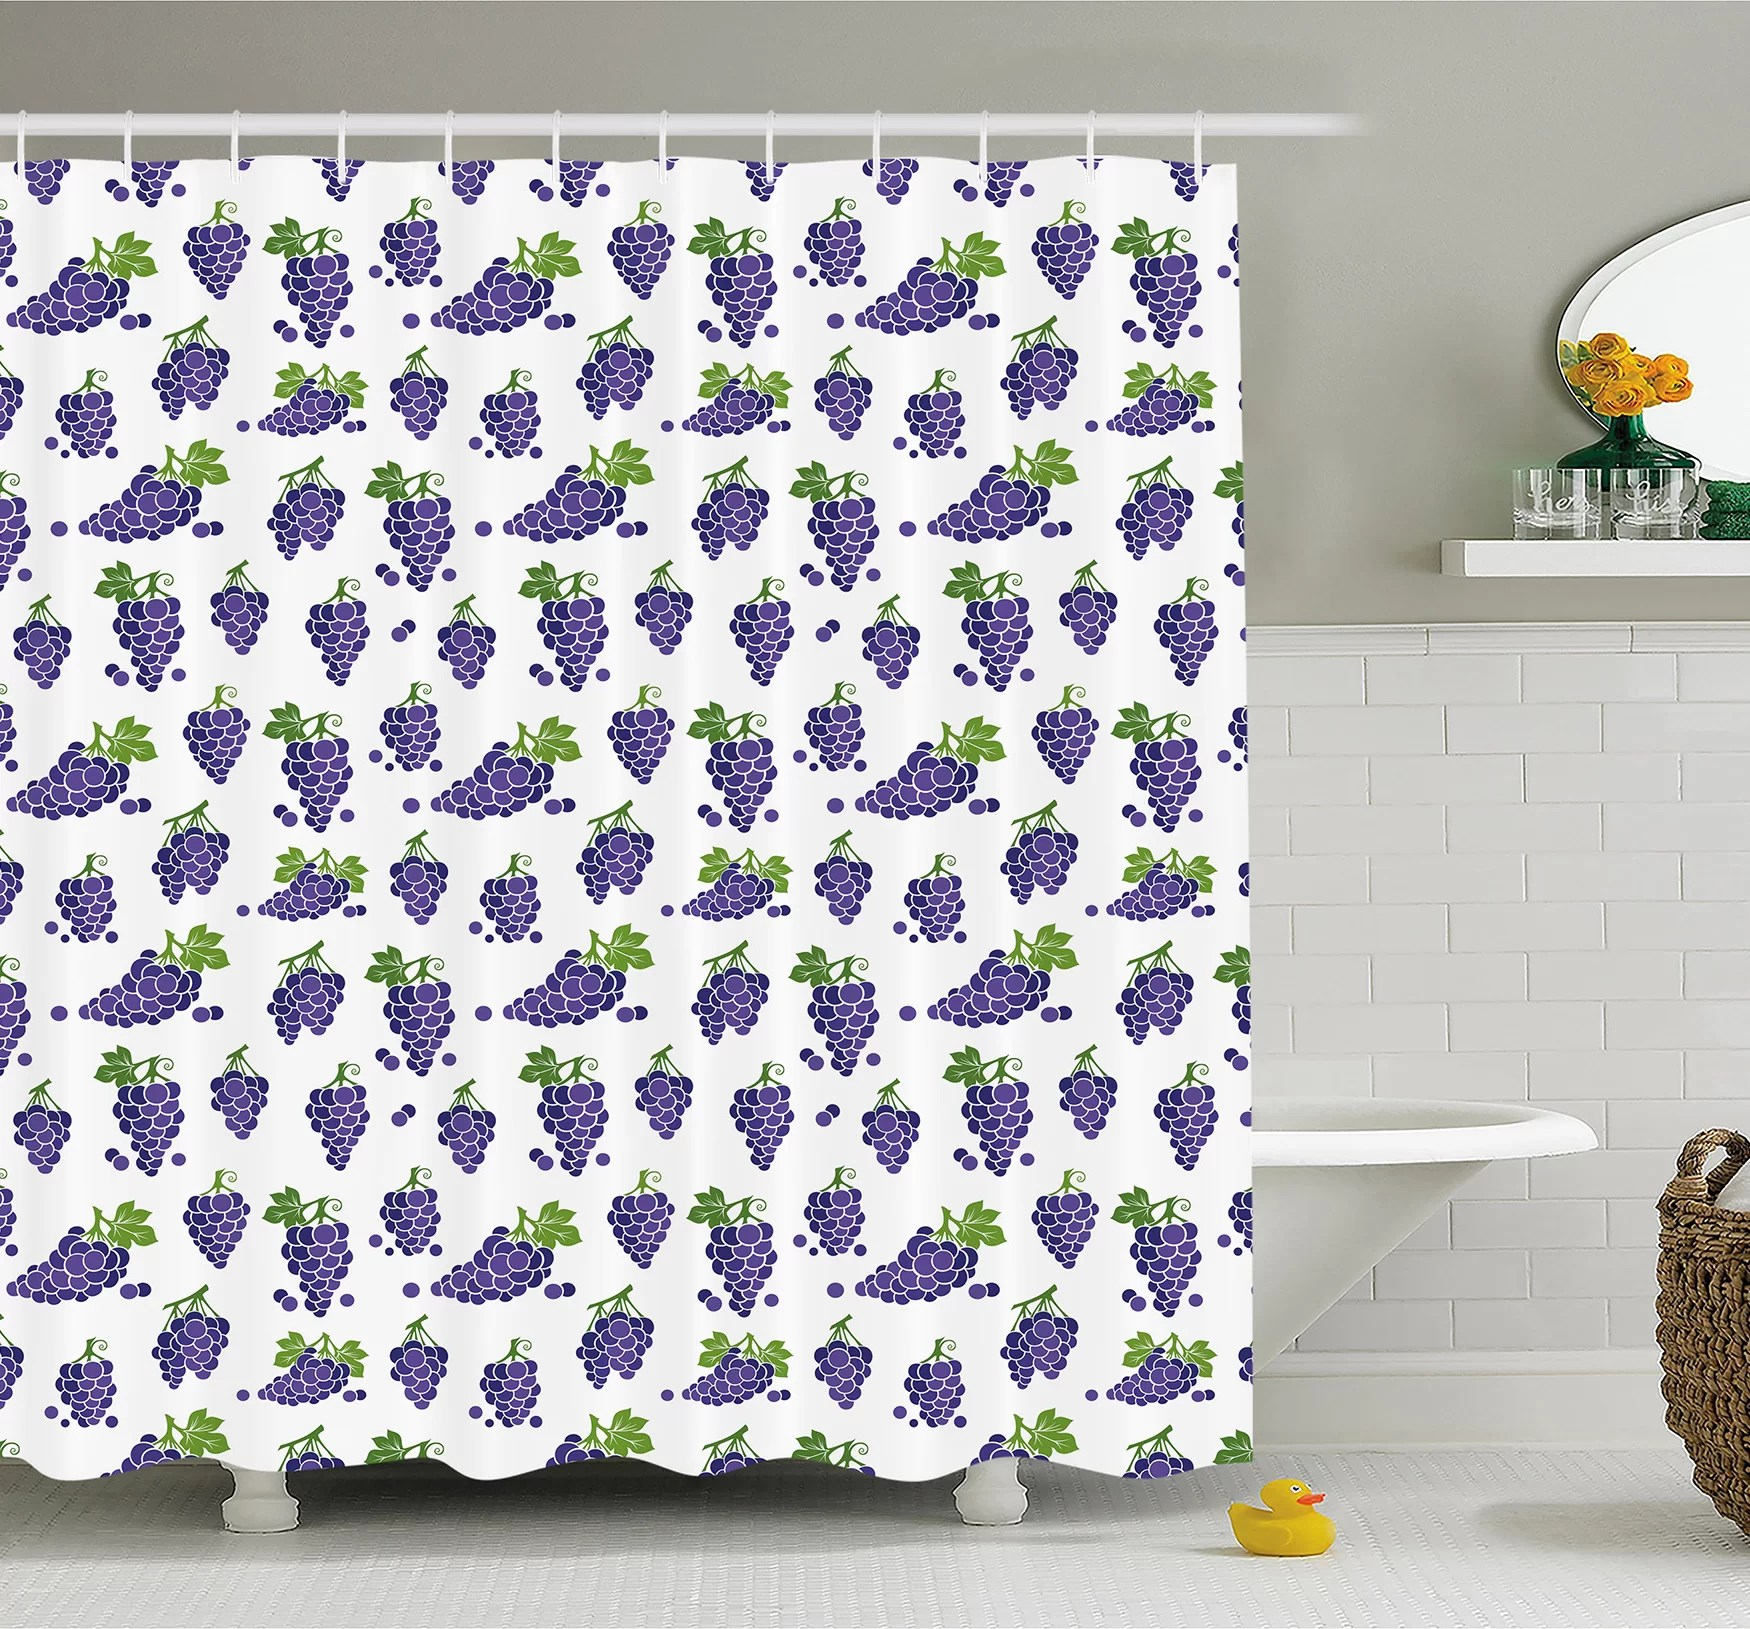 Cottage Shower Curtain Ambesonne Grapes Cute Fruit Icons Patterned Juicy Yummy Cottage